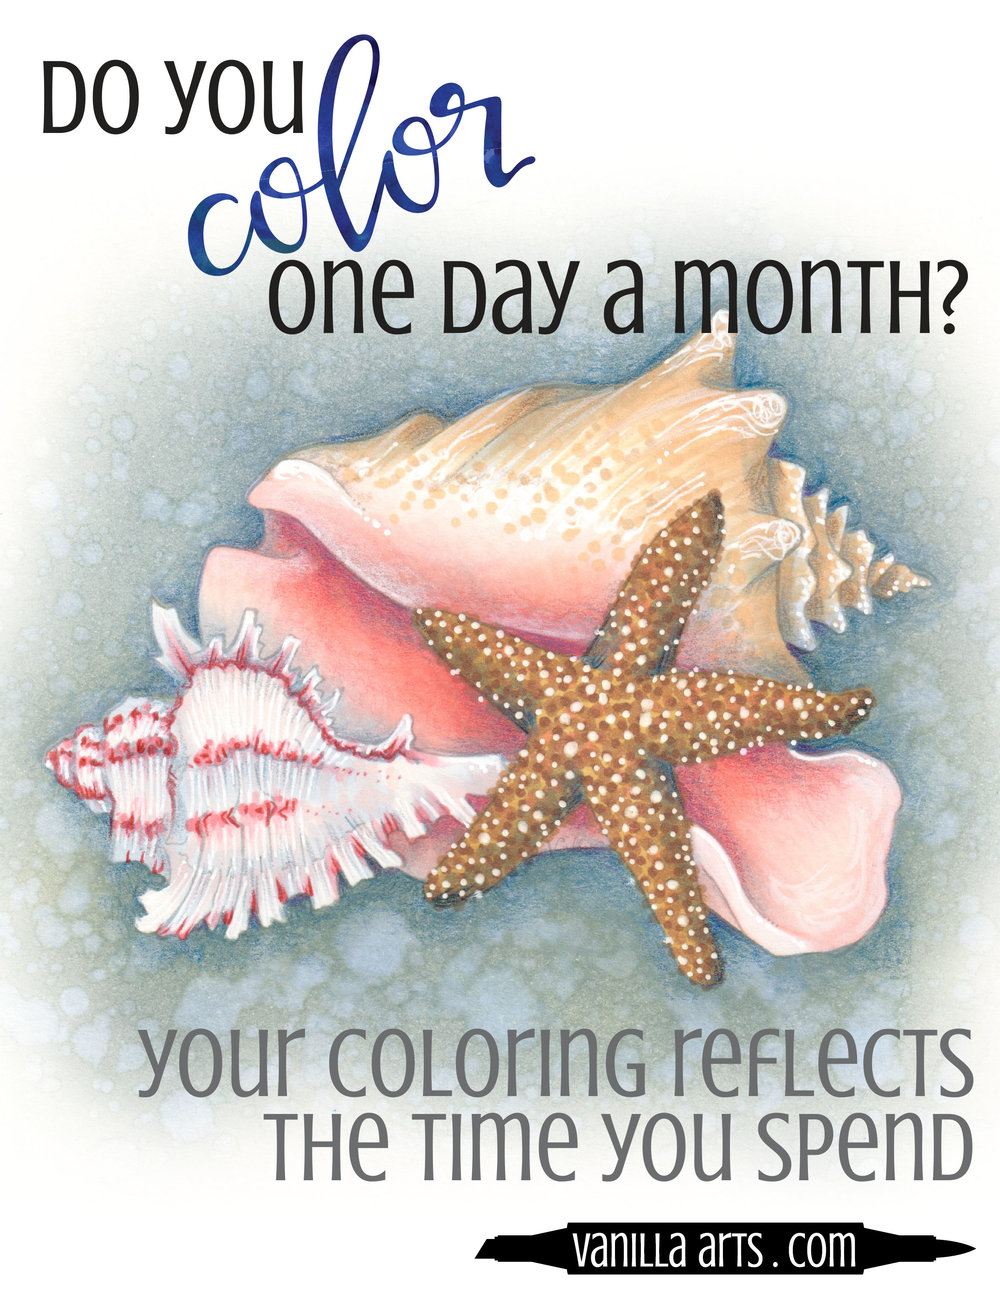 There is a natural ebb and flow to Copic Marker skills. Are you too harsh on yourself given the time you have available? | VanillaArts.com